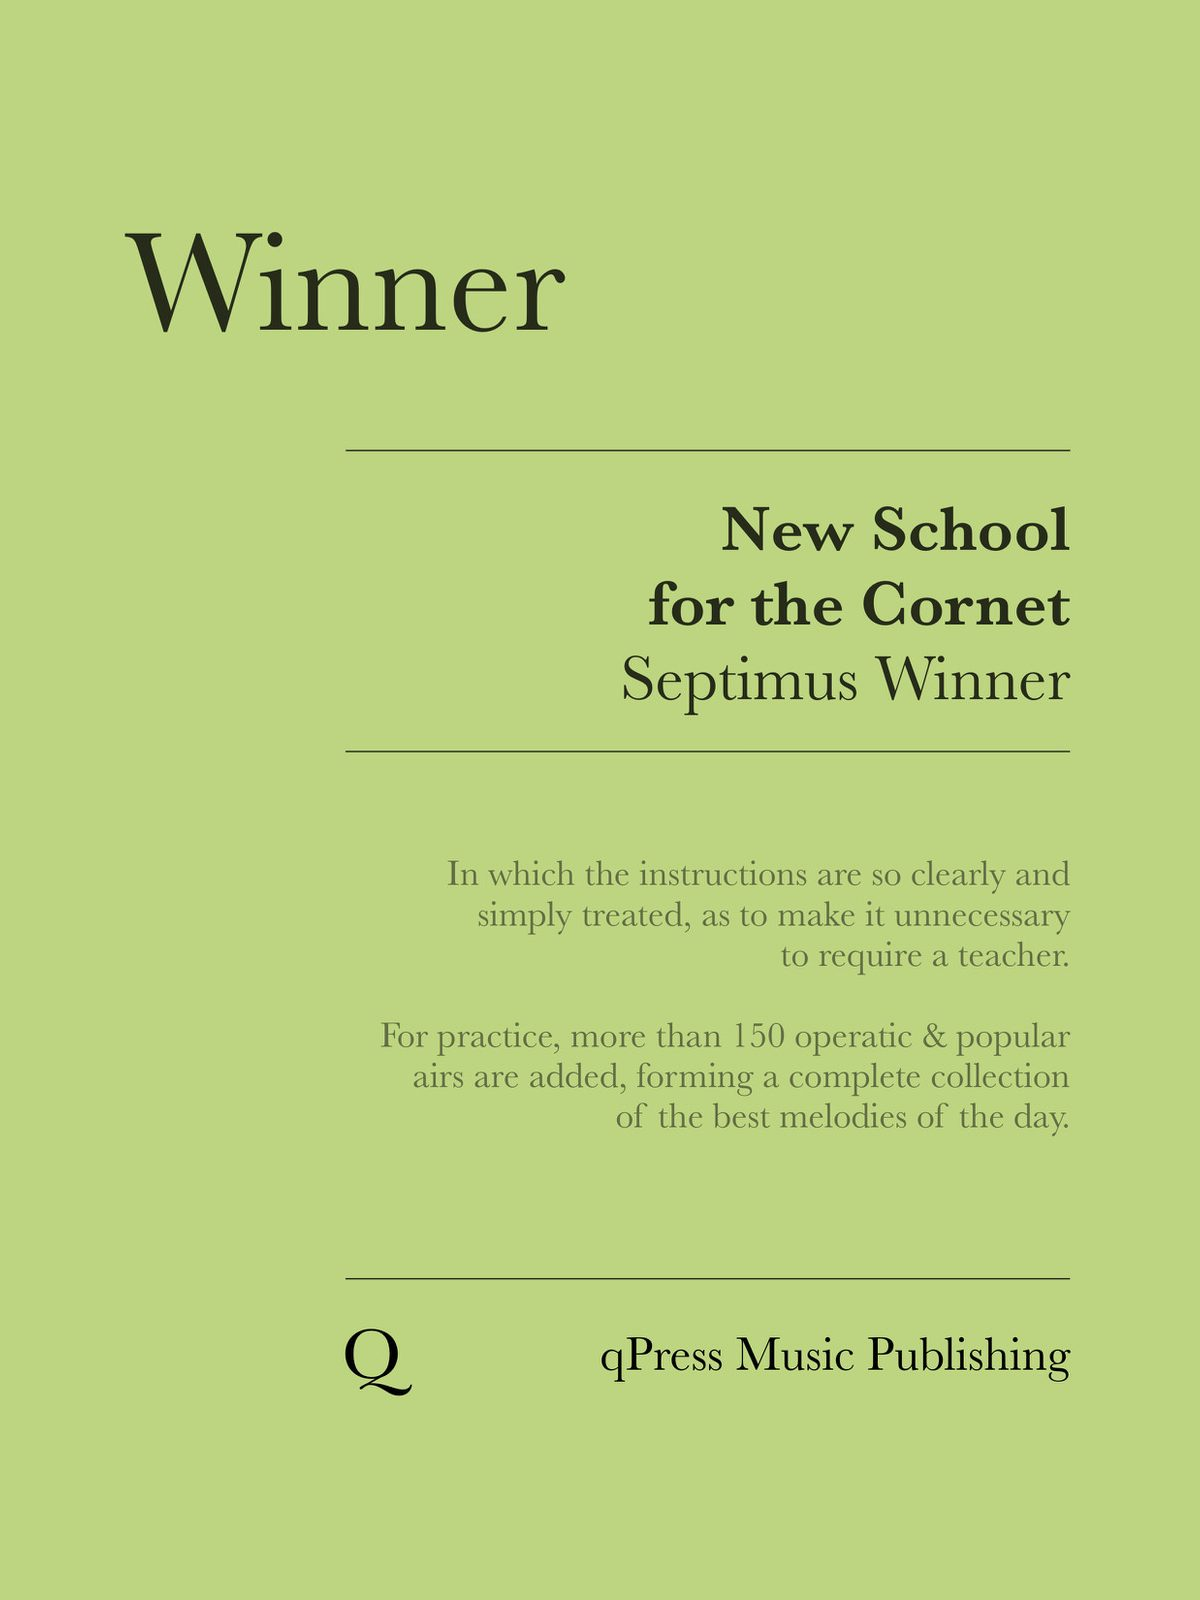 Winners, New School for the Cornet